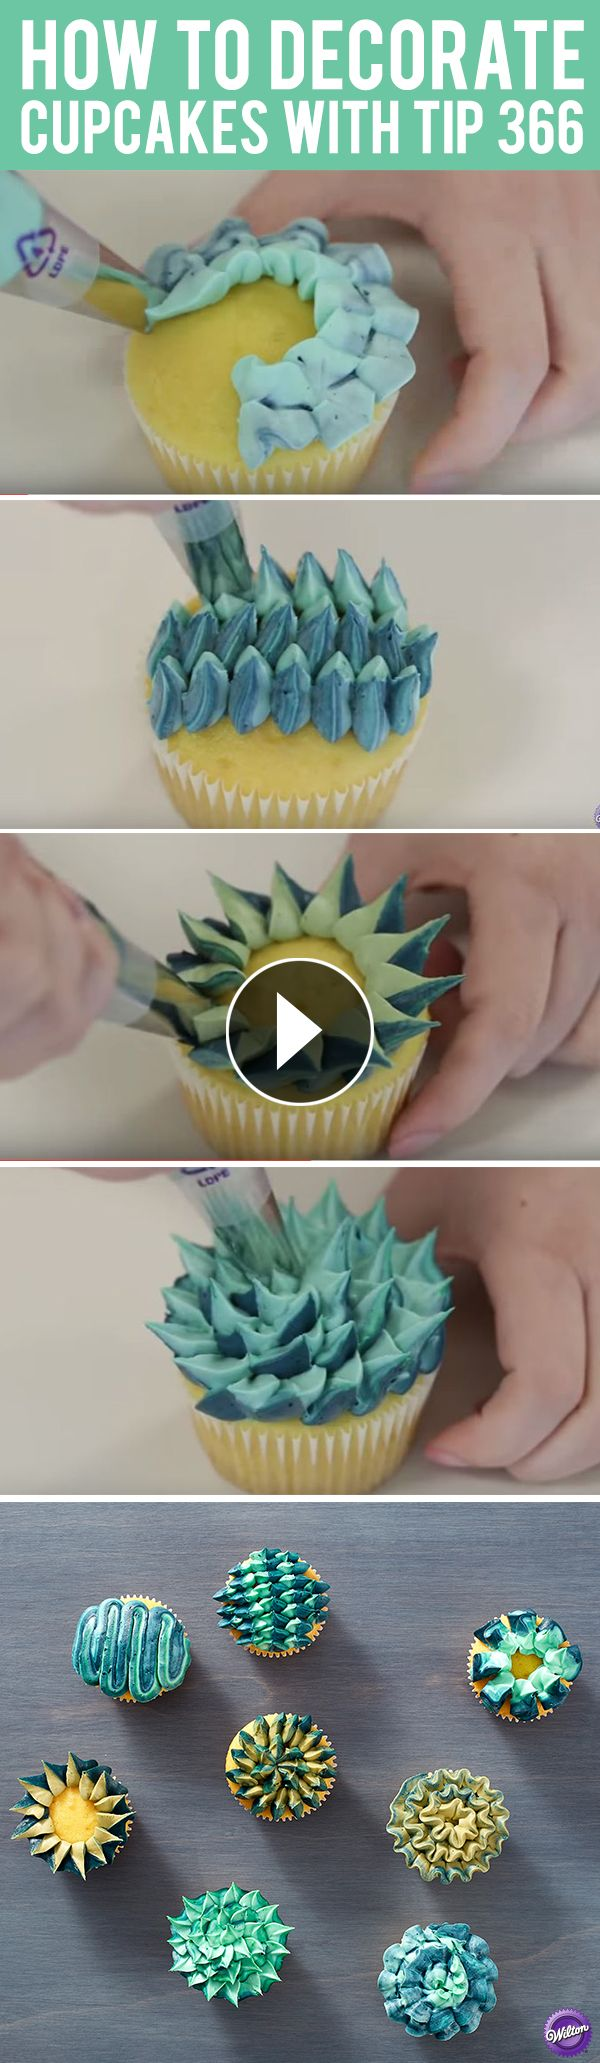 Learn 8 different ways to decorate cupcakes using only one tip - Wilton leaf decorating tip 366! A fun idea for parties and for decorators looking to fine-tune their piping skills, these fun cupcake designs can also be made using any icing color combination you'd like.